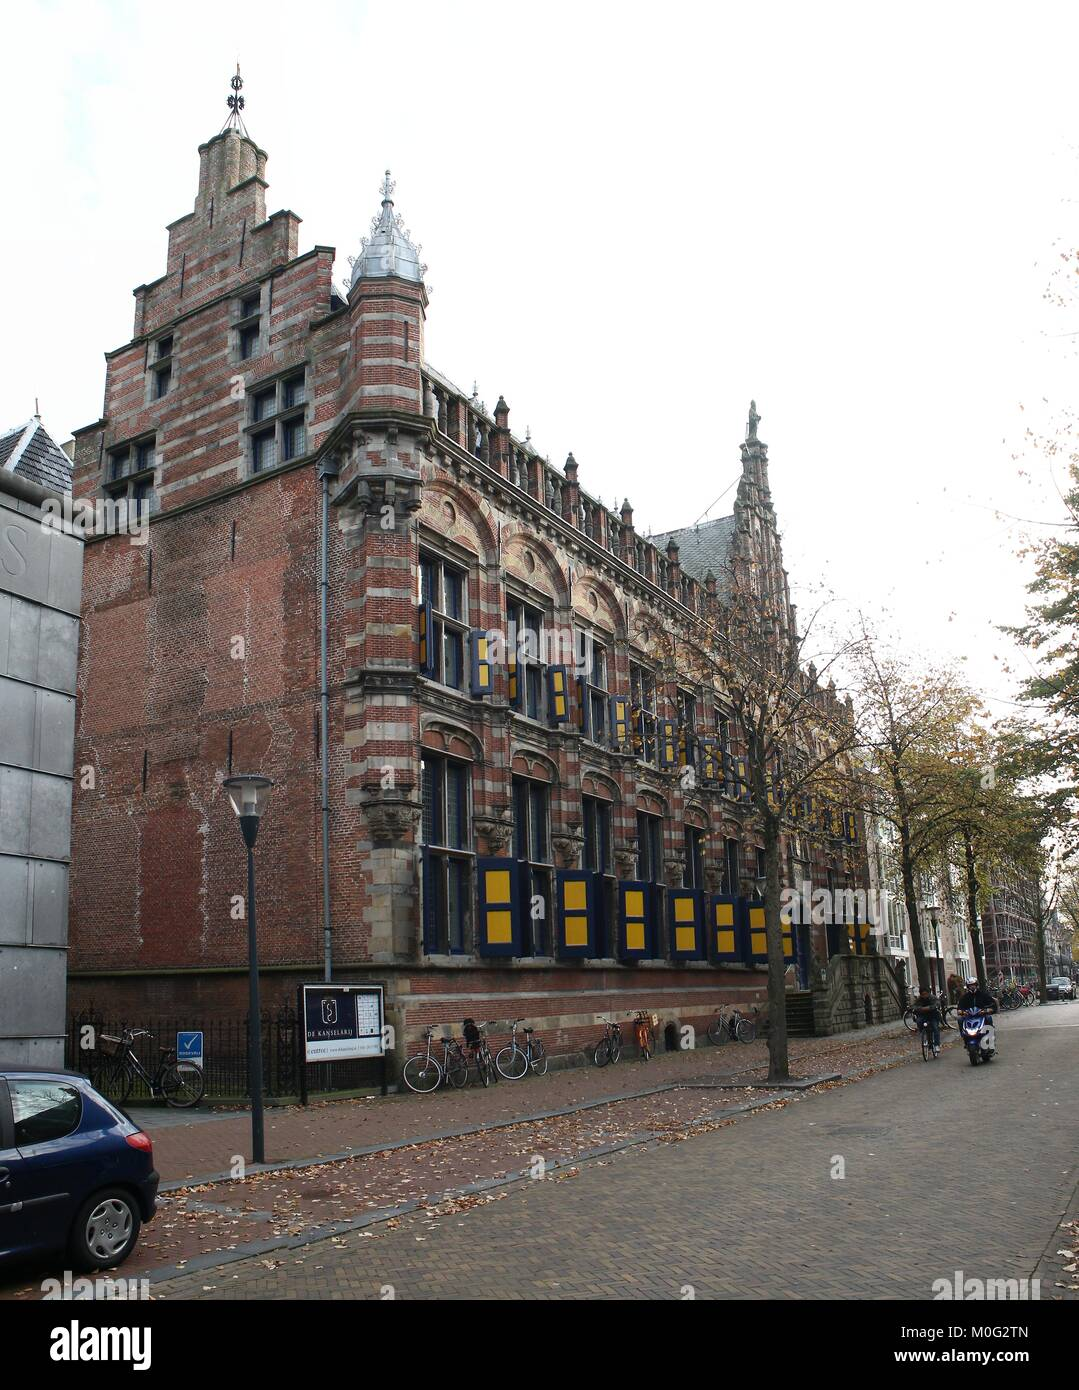 Iconic mid 16th century former Chancellery at Turfmarkt street, central Leeuwarden, Friesland, The Netherlands. - Stock Image